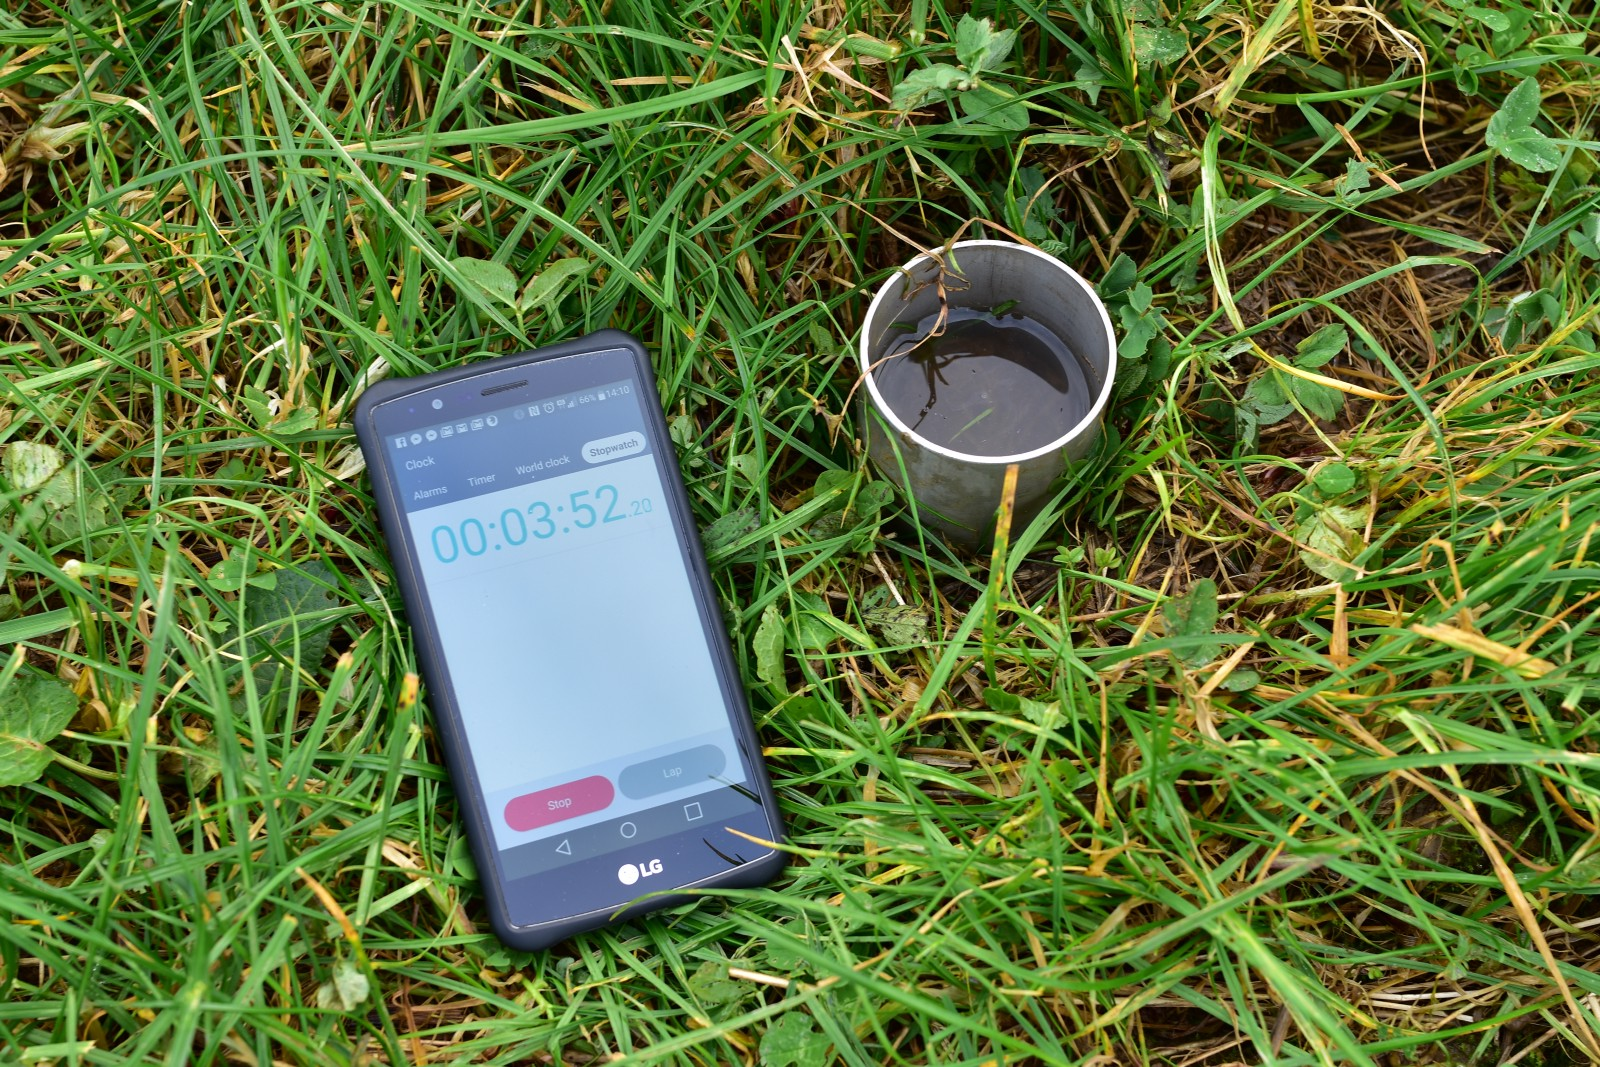 August 2018 Sectormentor For Soils This Simple Plant Water Alarm Circuit Indicates When The Soil Is Dry Which Kind Of A No Brainer Though That Said Its Really Measure Aggregation Since As Improves So Does Infiltration